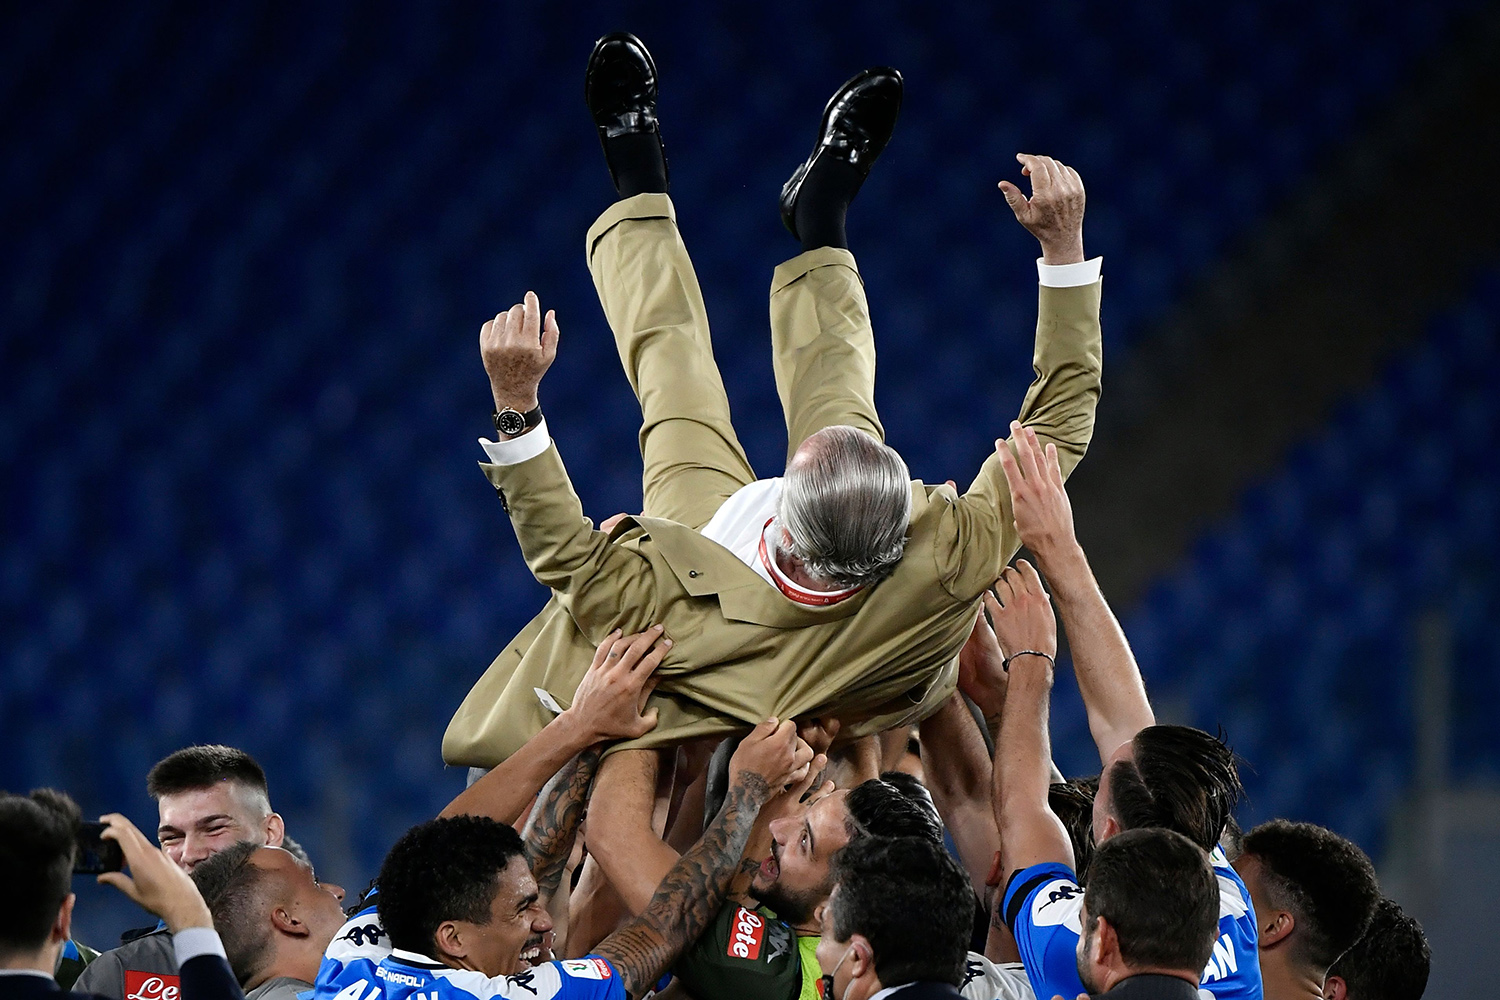 Players throw Napoli president Aurelio De Laurentiis in the air as they celebrate their Italian Cup win at the Olympic Stadium in Rome on June 17. It was the Naples football team's first trophy in six years. FILIPPO MONTEFORTE/AFP via Getty Images